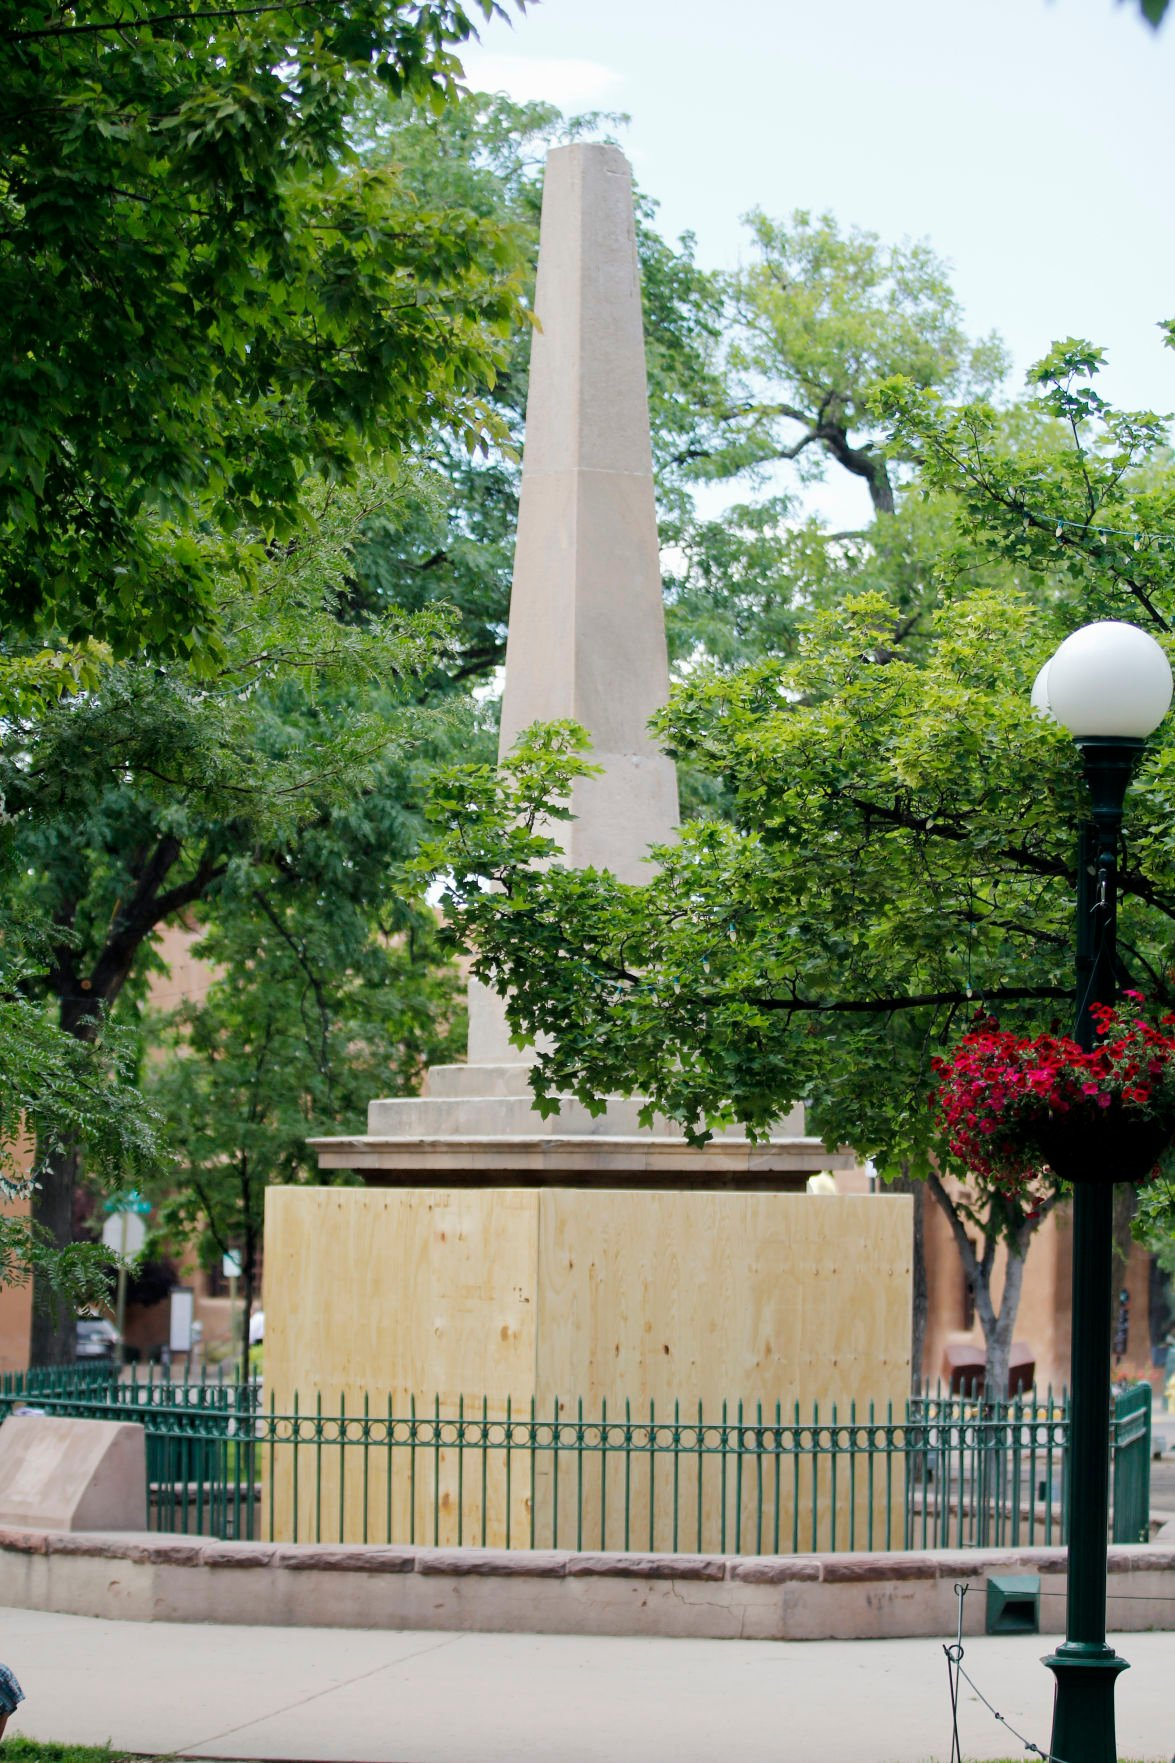 Santa Fe Plaza Obelisk Sheathed In Plywood Poetry Local News Santafenewmexican Com